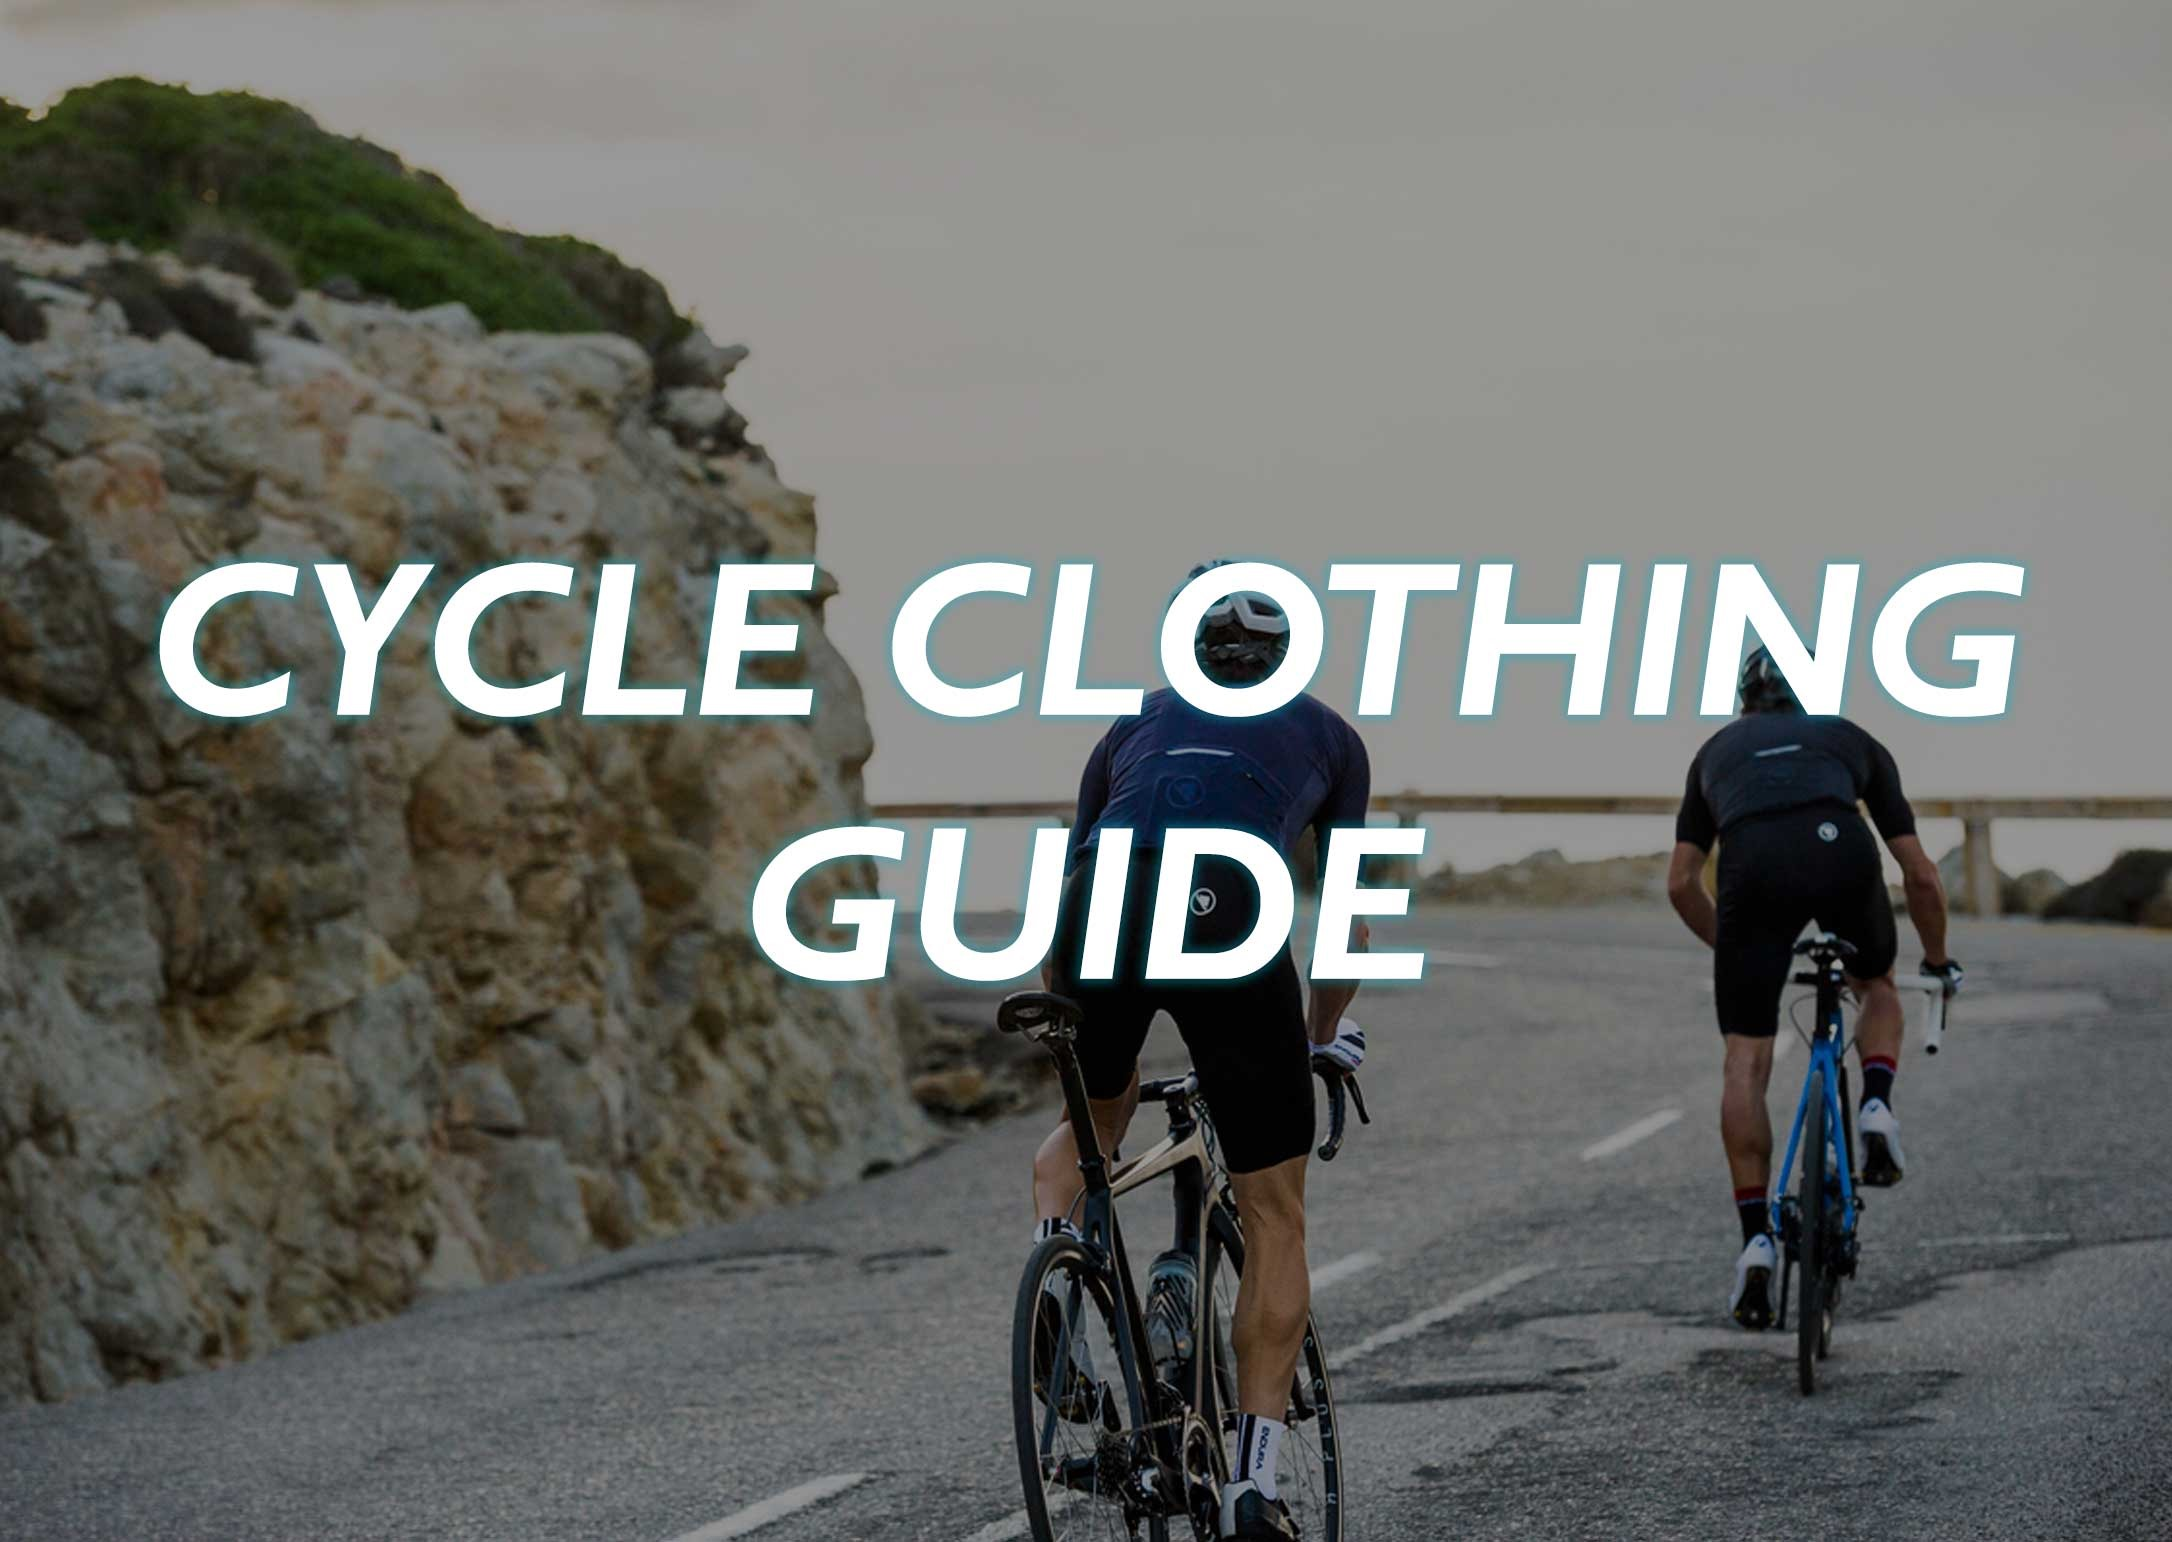 cycle-clothing-guide-tile